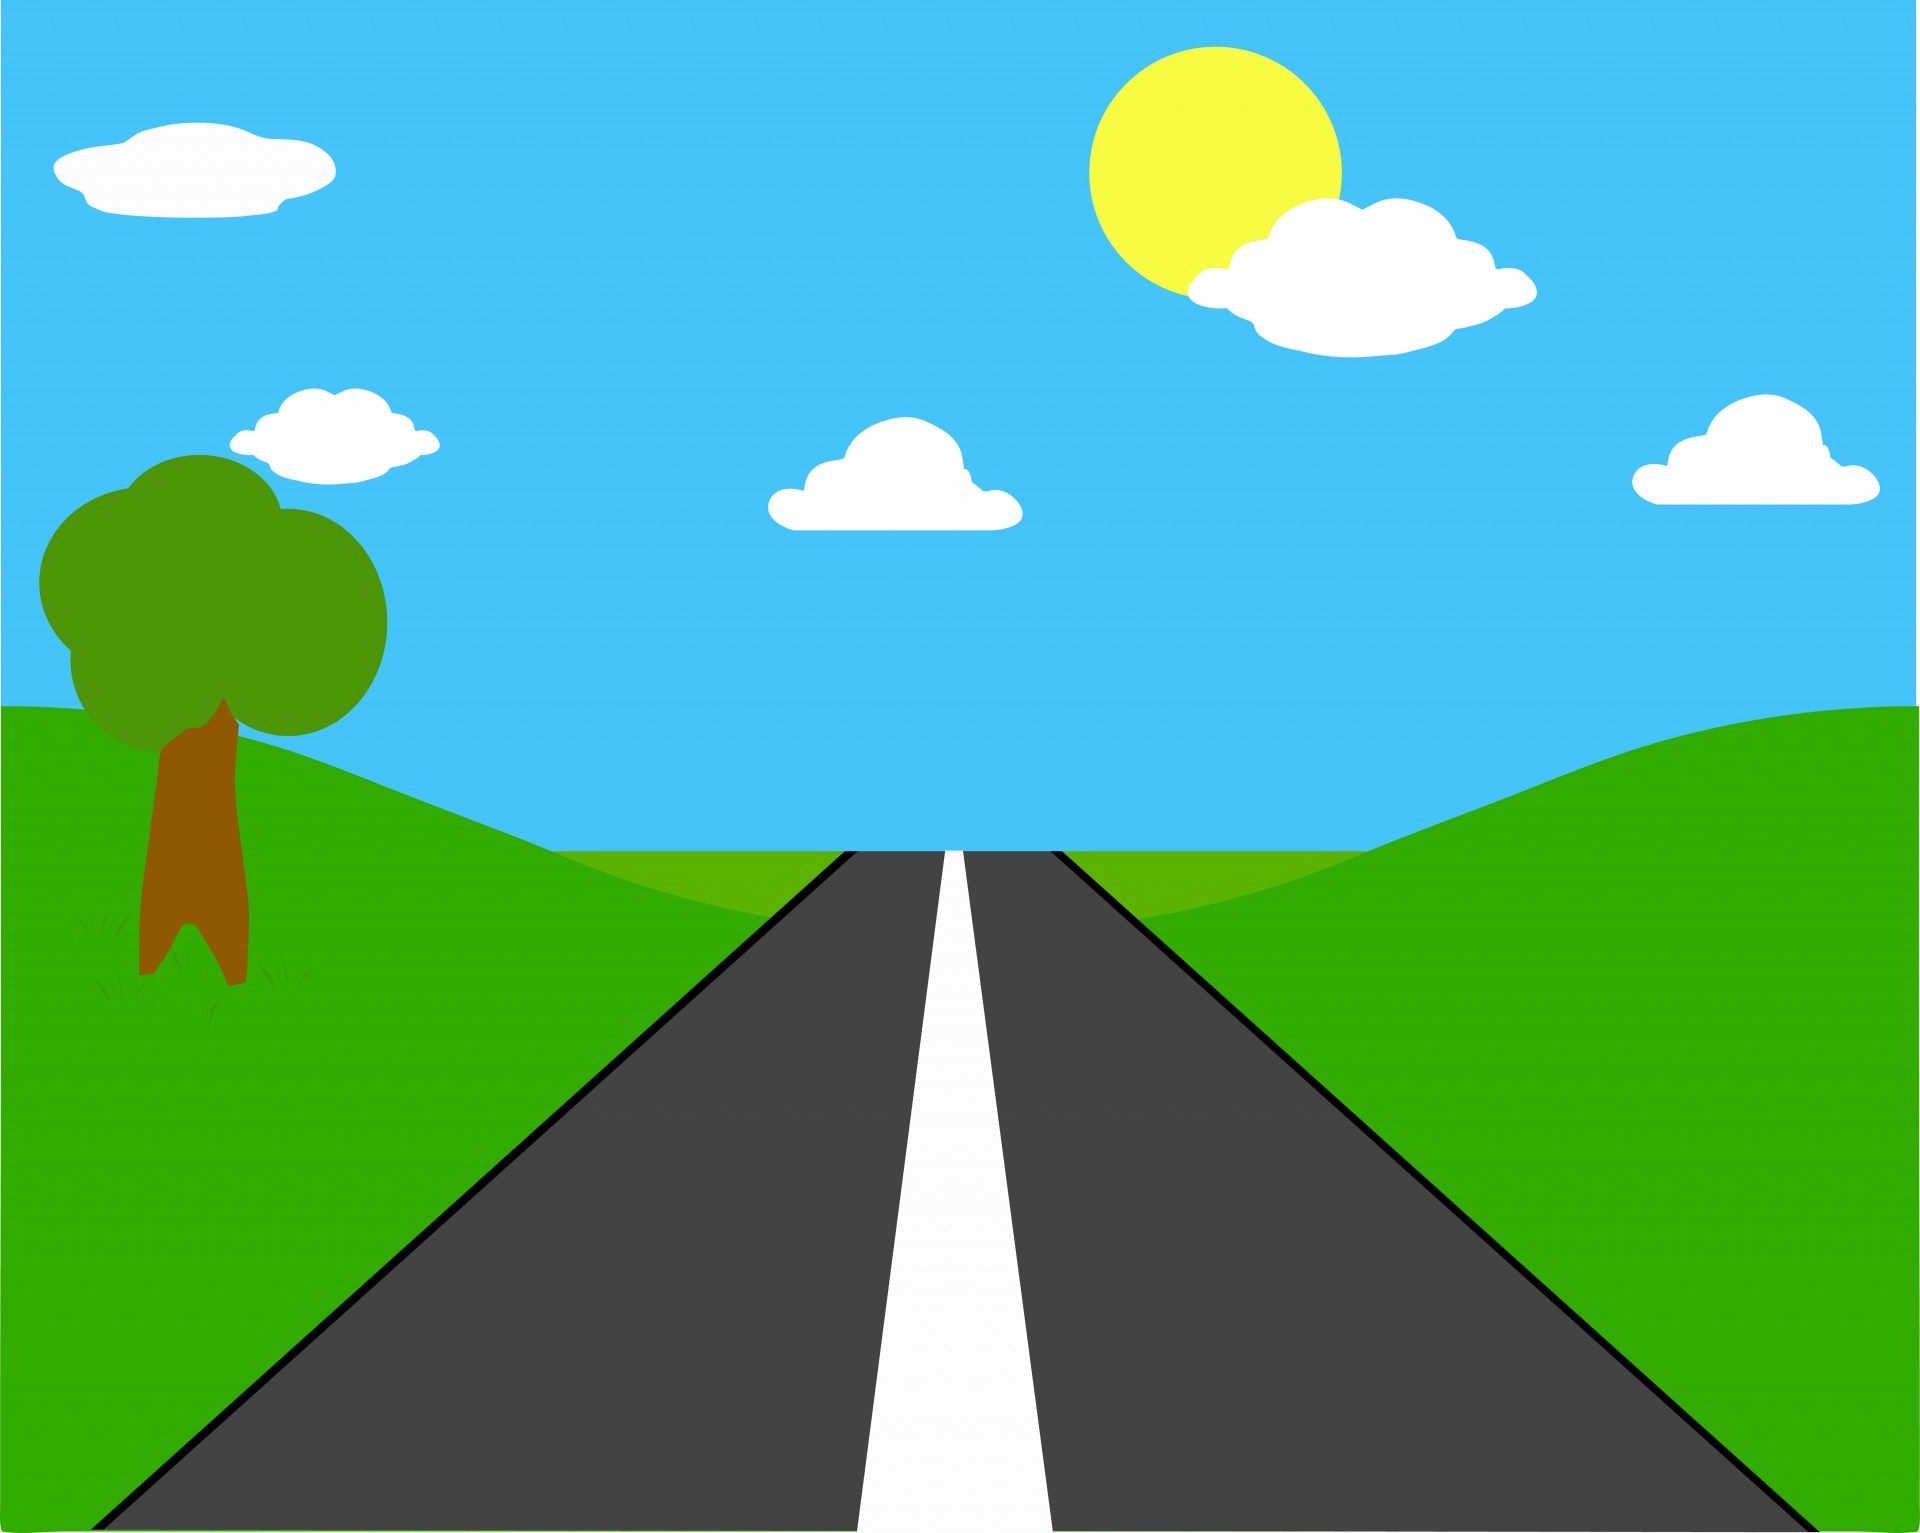 Road clipart #16, Download drawings